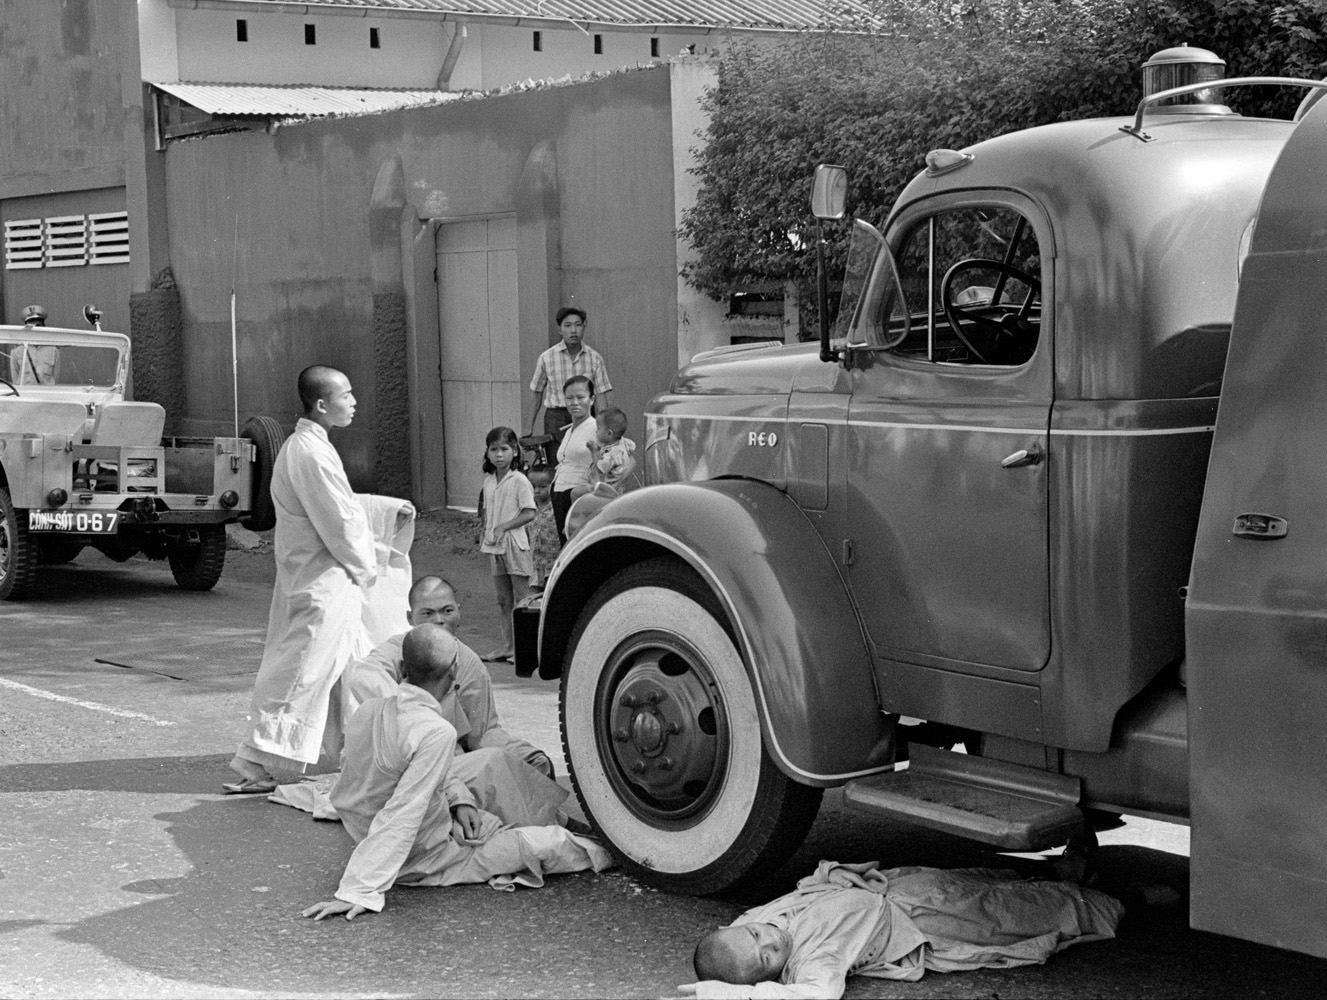 After the immolation, monks prevent a fire truck from approaching the scene.